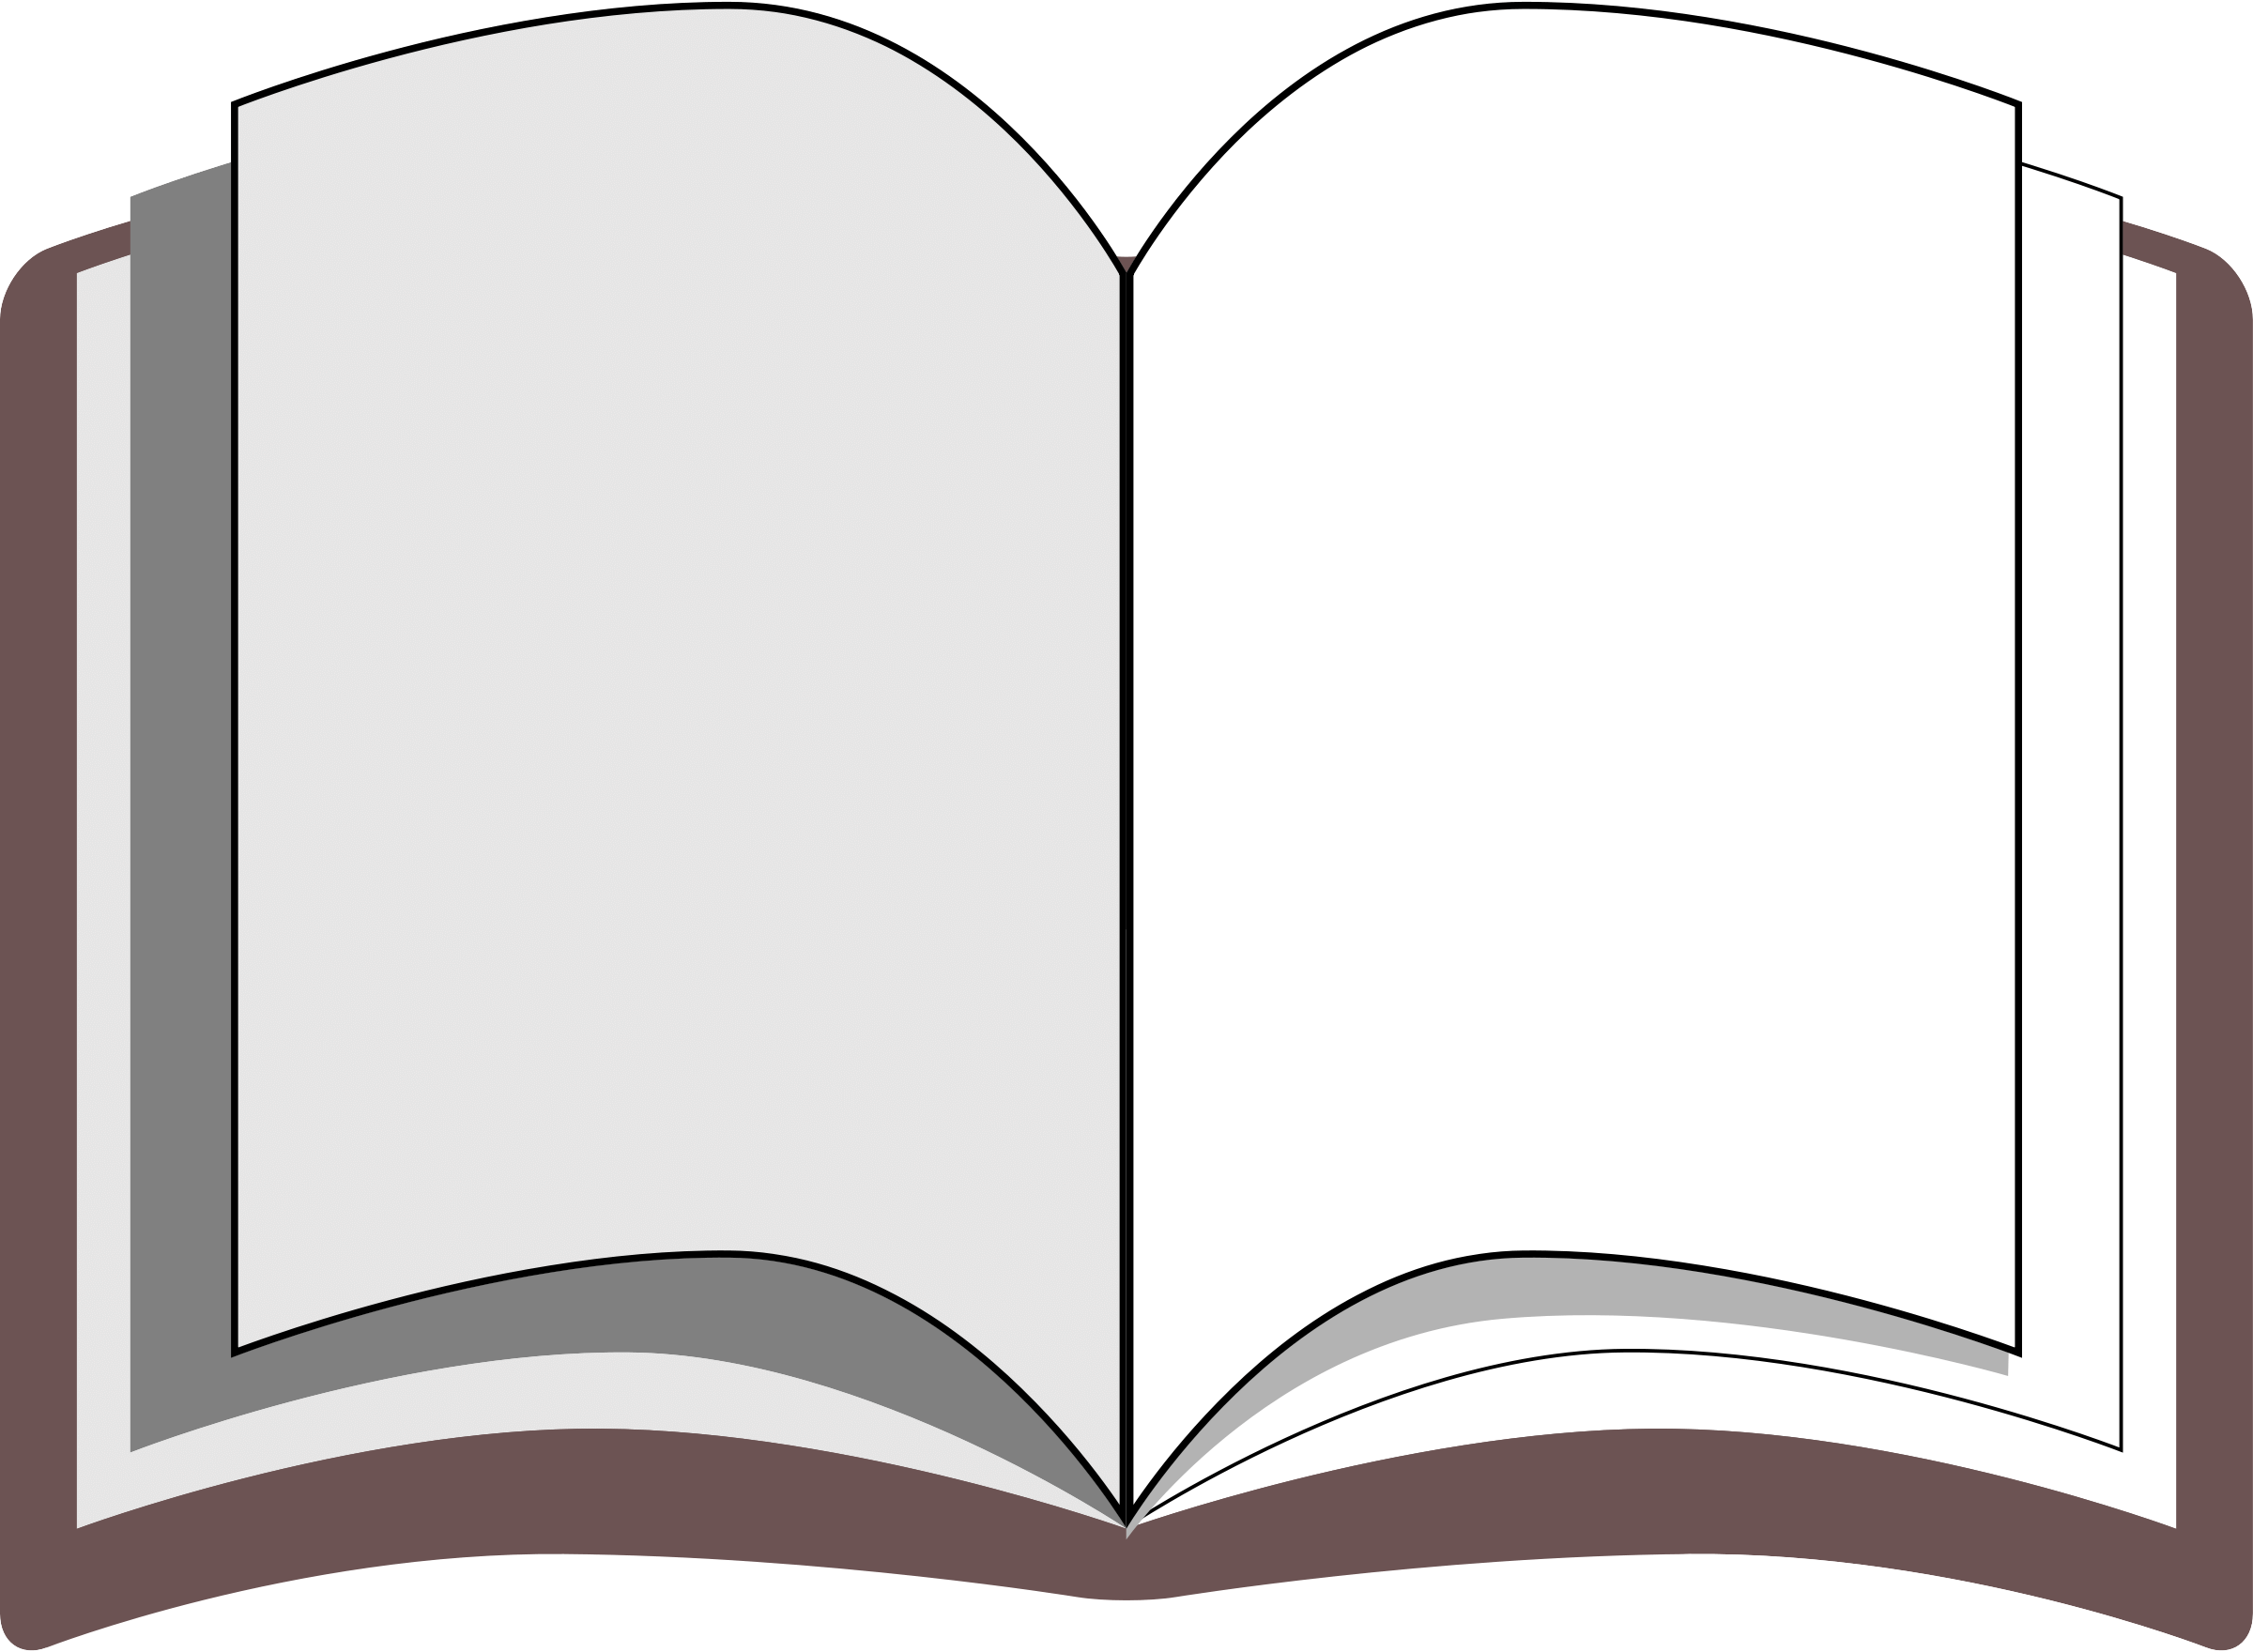 Public domain book cliparts. Textbook clipart big